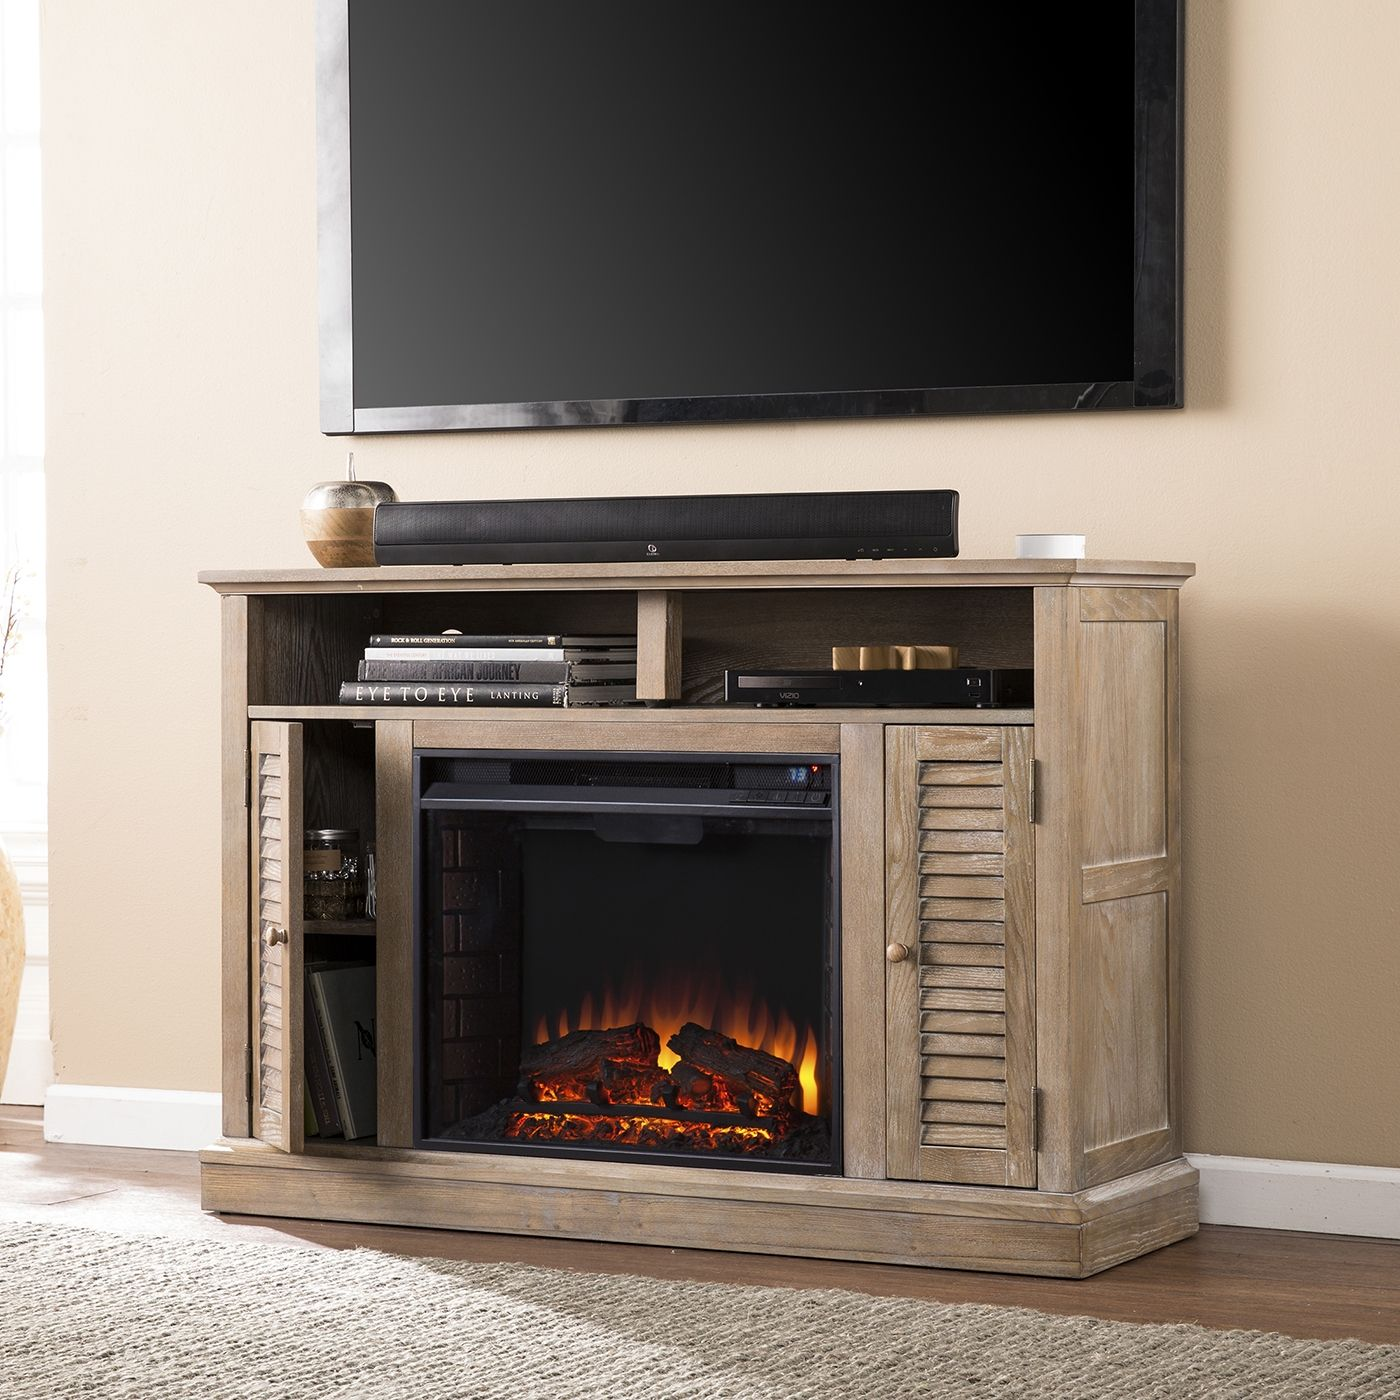 Shop Boston Loft Furnishings Farrell Electric Fireplace Tv Stand At The Mine Browse Our Electric Fireplace Tv Stand Fireplace Tv Stand Lowes Home Improvements